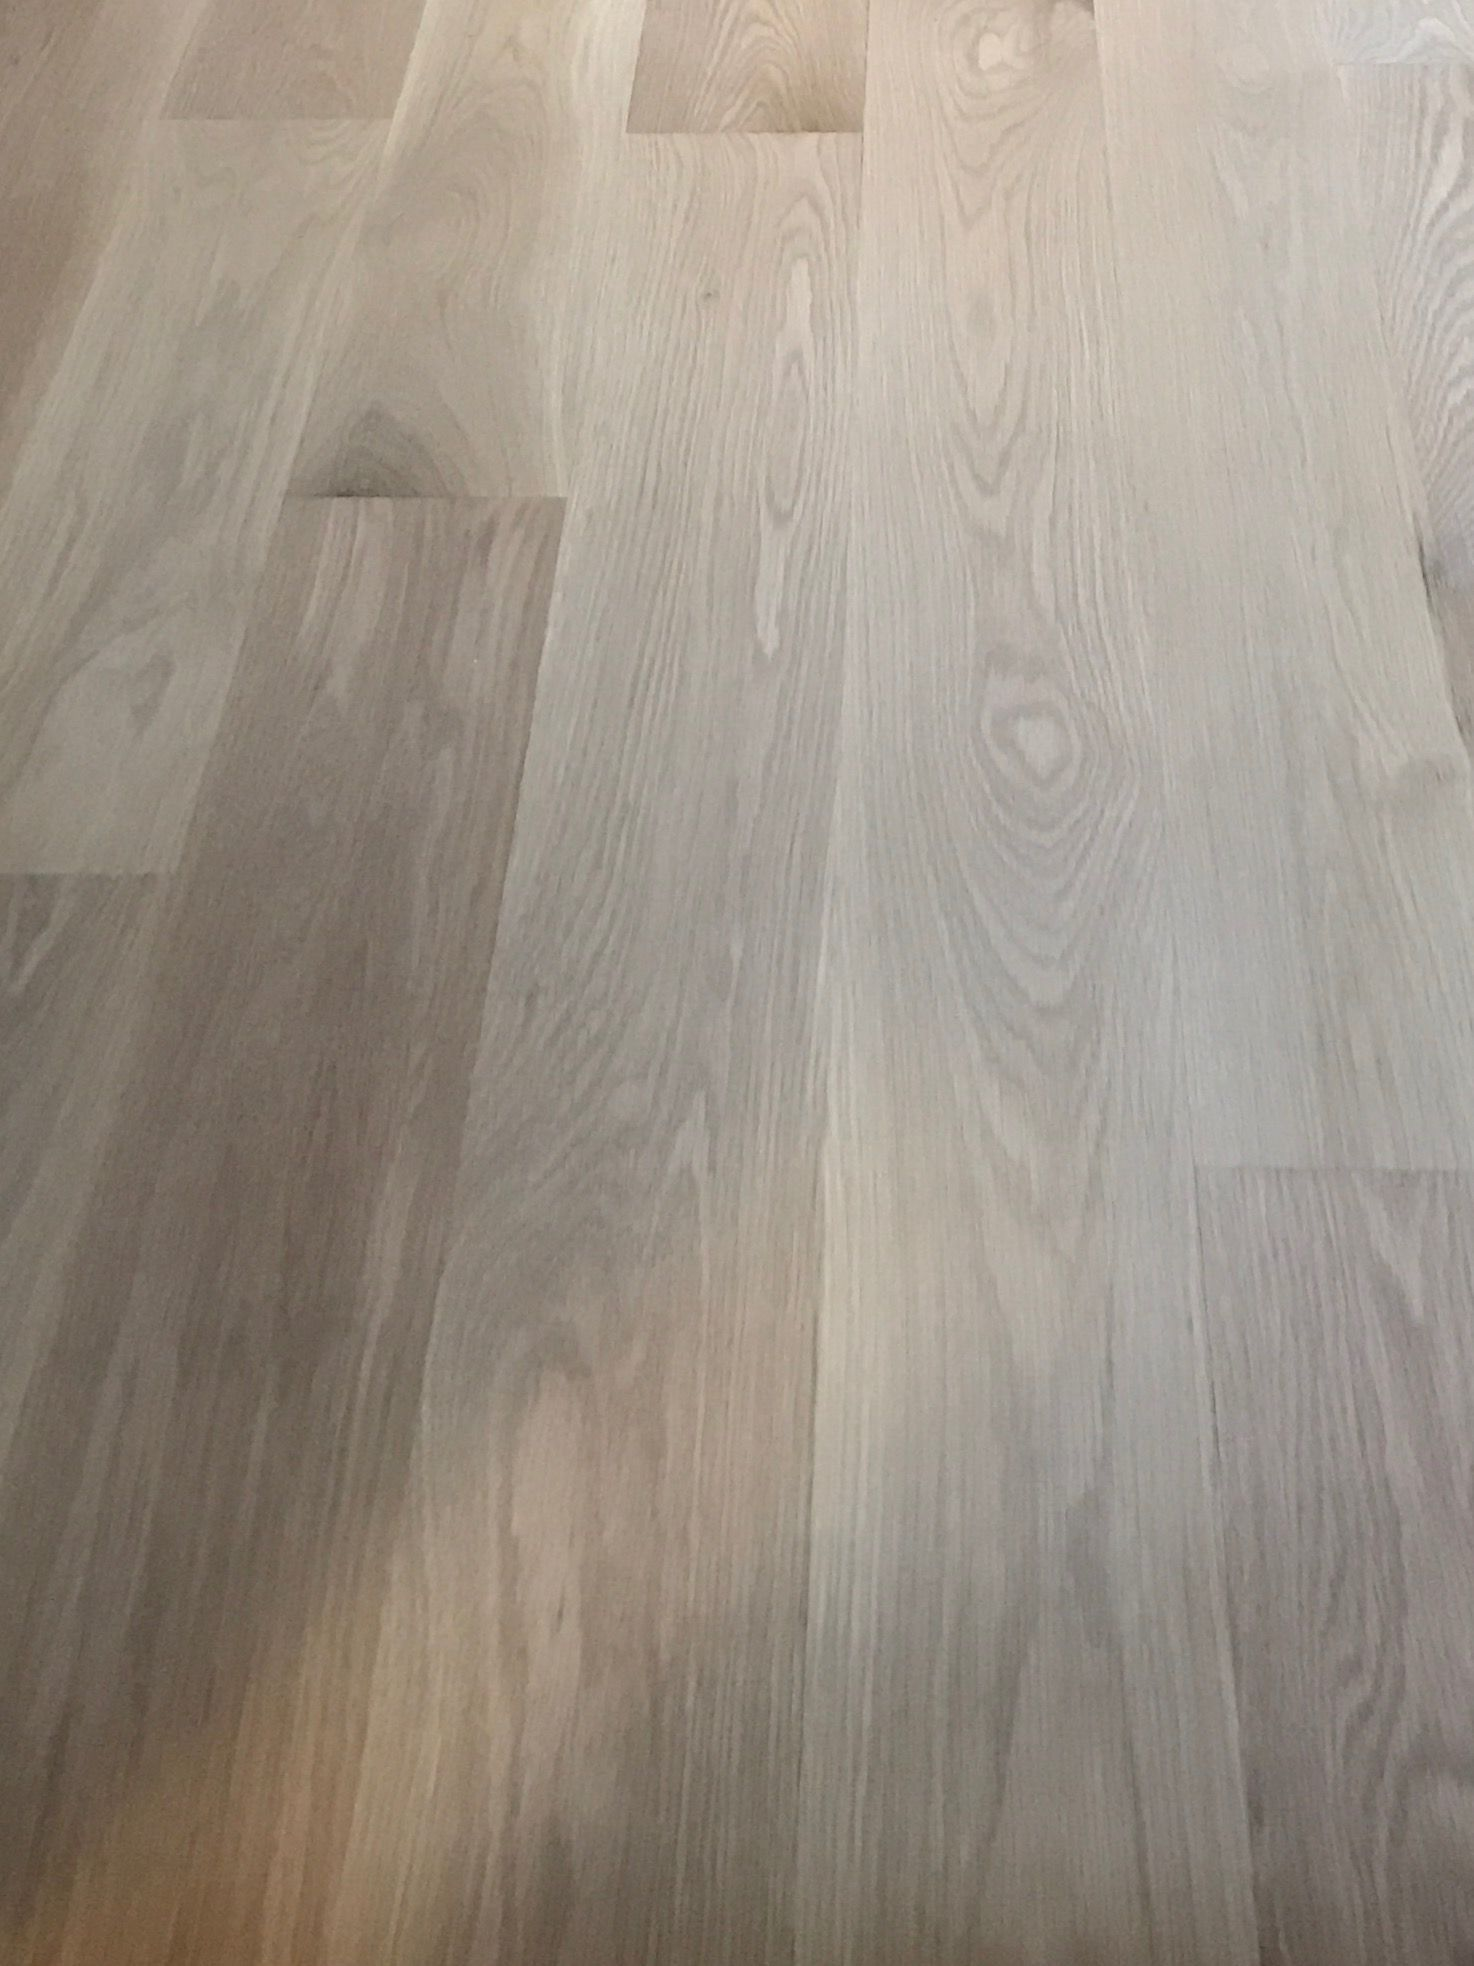 White Oak Floors With Pickled Wash on  Wiped Off then